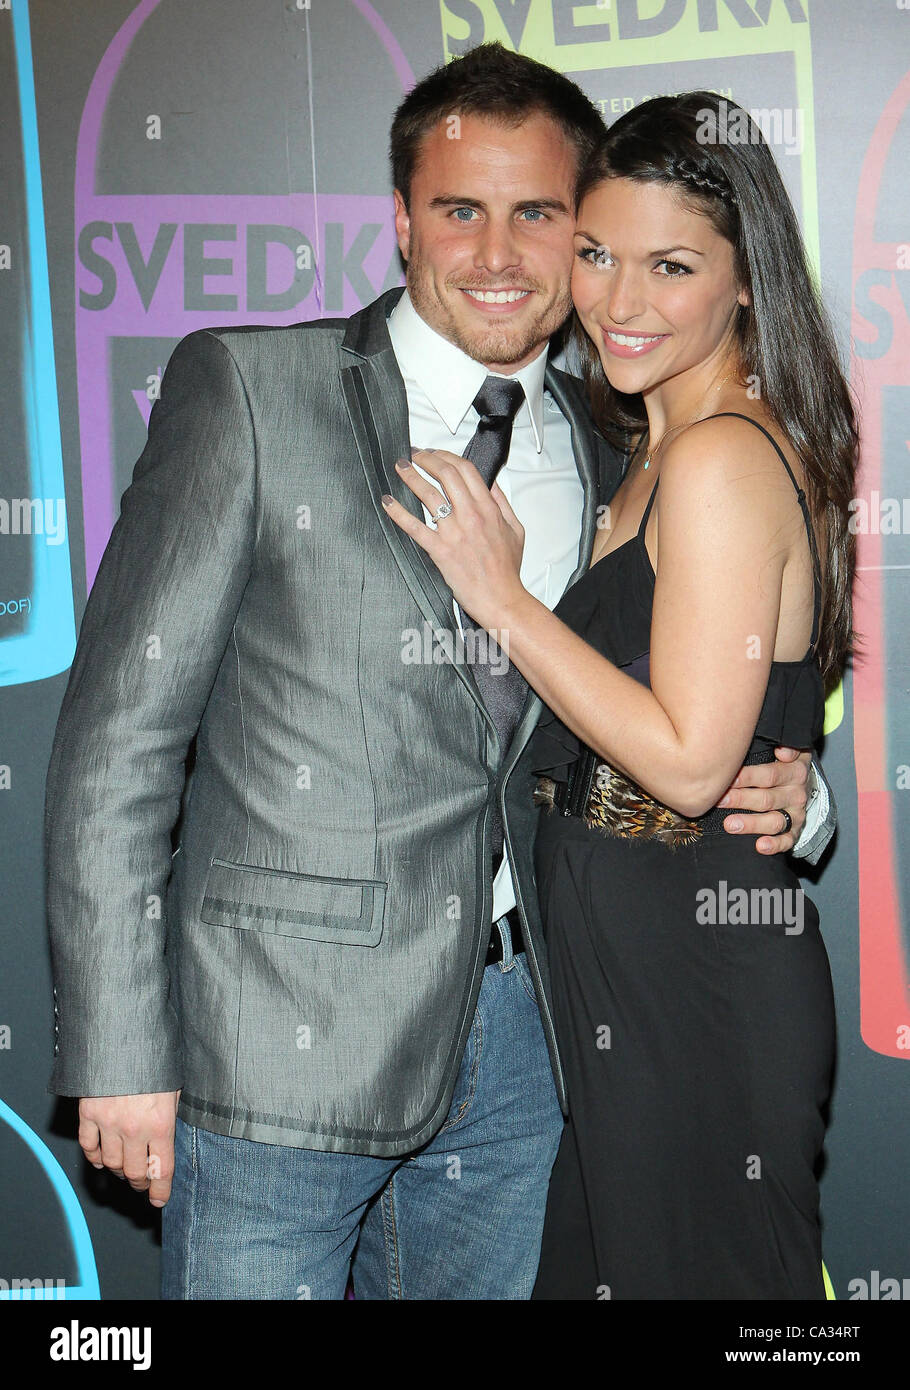 Who is deanna pappas dating 2012